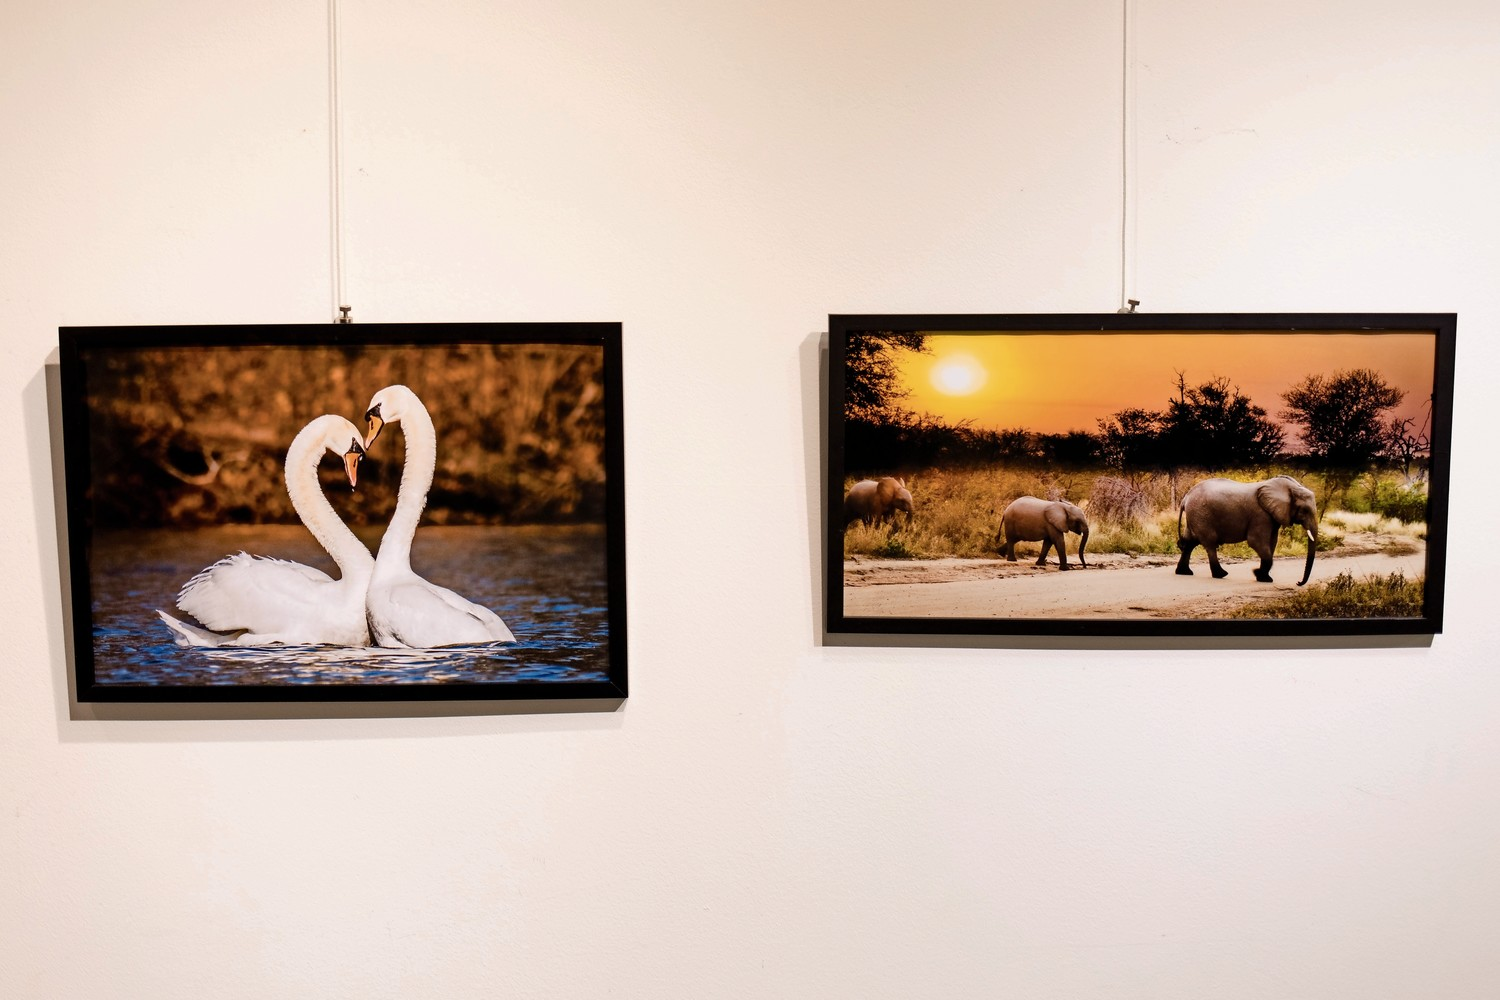 Mark Davis photographs a mix of animals near and far. At left, swans have a moment together in Van Cortlandt Park. At right, elephants cross the road in Kruger National Park in South Africa. His exhibition 'Wildlife: Near and Far' is on view at the Riverdale Y until June 30.